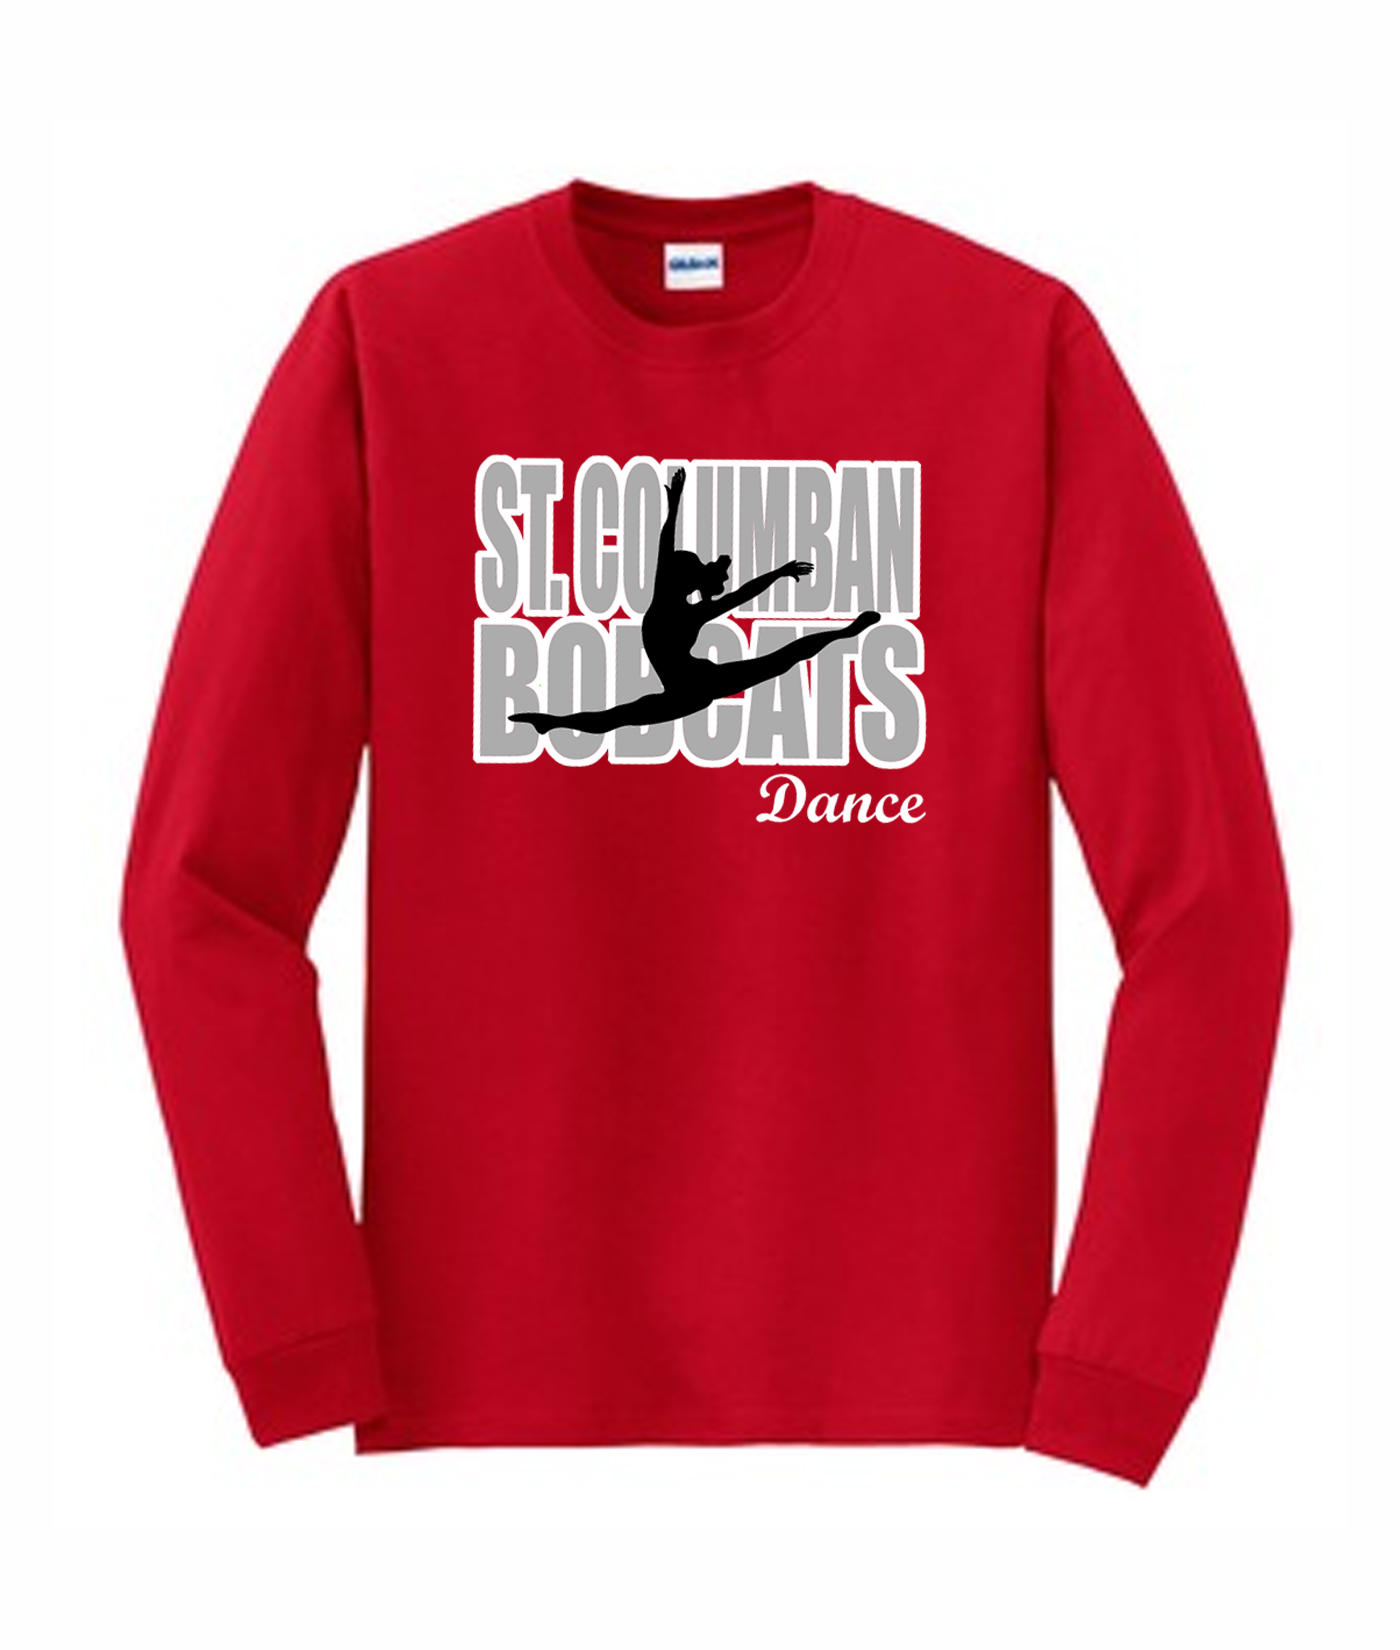 Red Long Sleeve T-Shirt Dance In Words